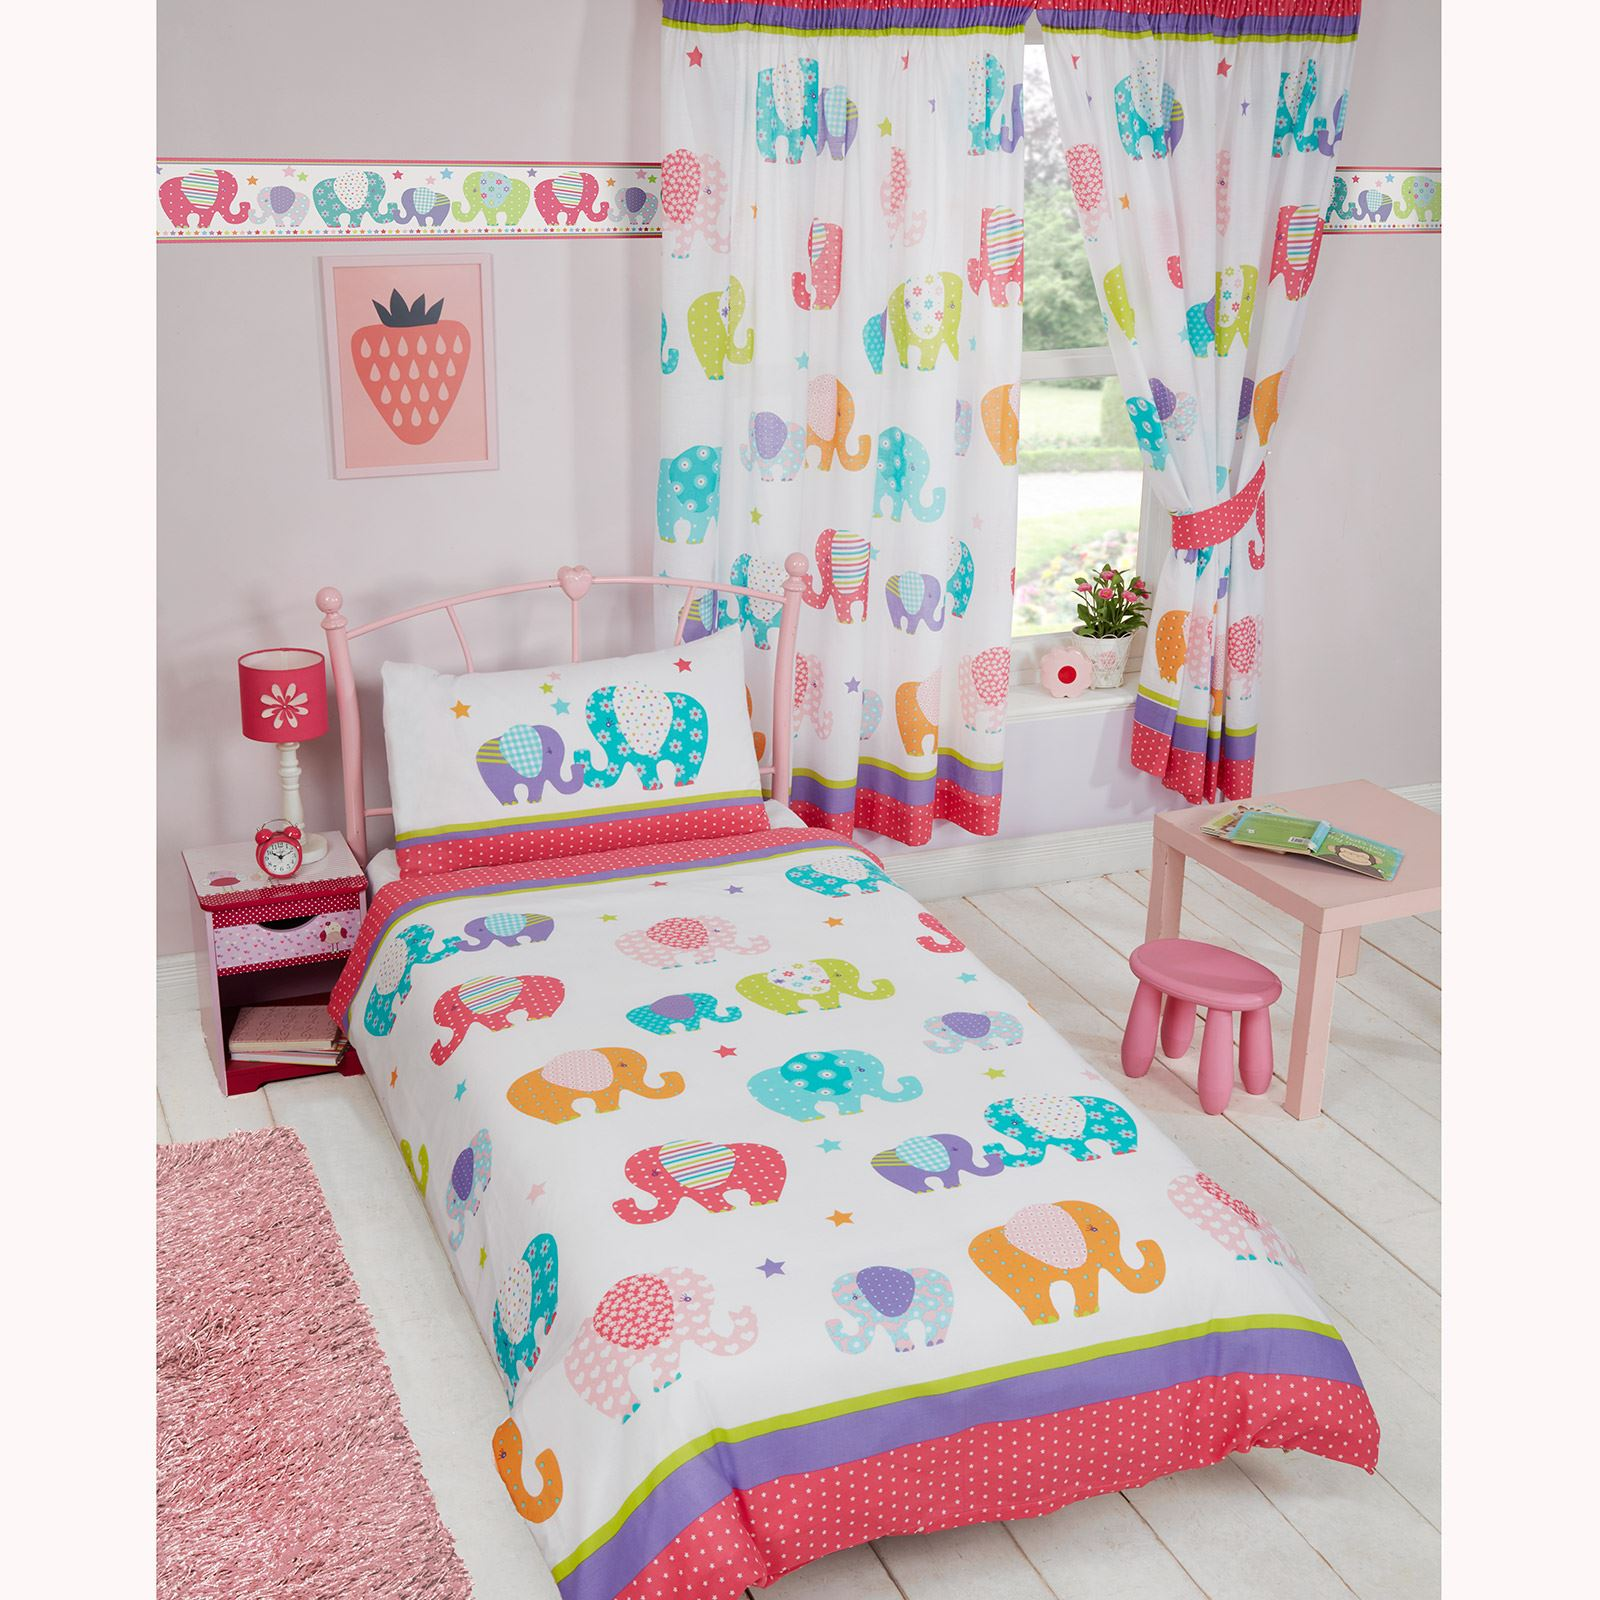 GIRLS SINGLE DUVET COVER SETS UNICORNS BUTTERFLIES PRINCESS